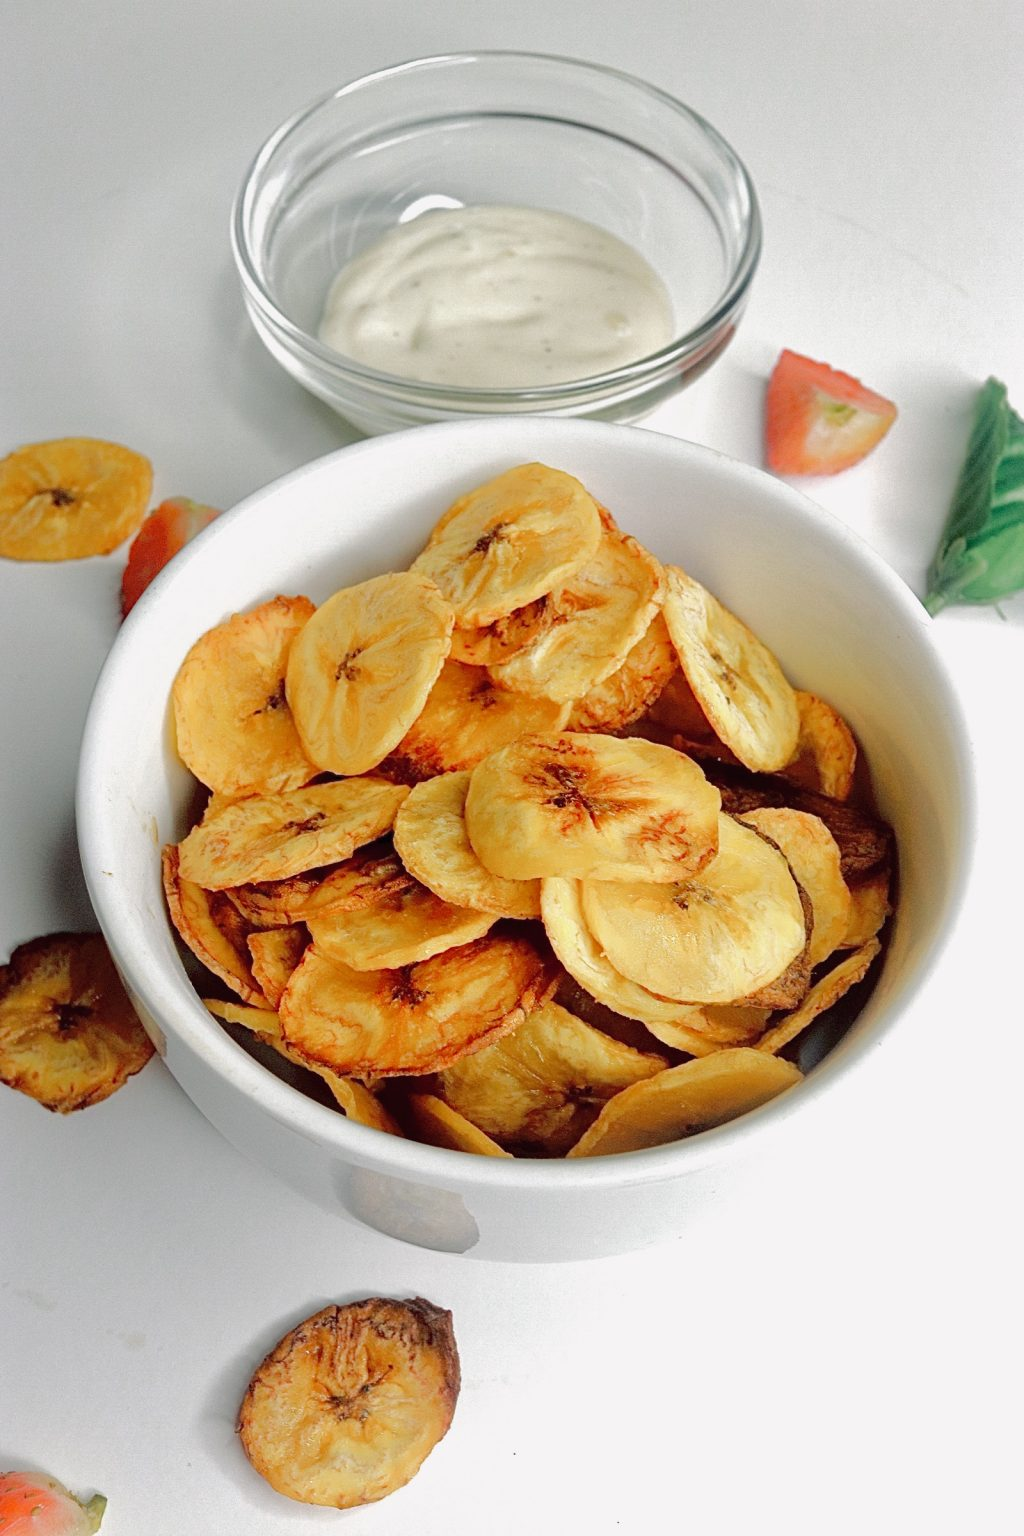 plantain chips recipe 3260 1024x1536 - The Perfect & Crunchy Homemade Plantain Chips Recipe